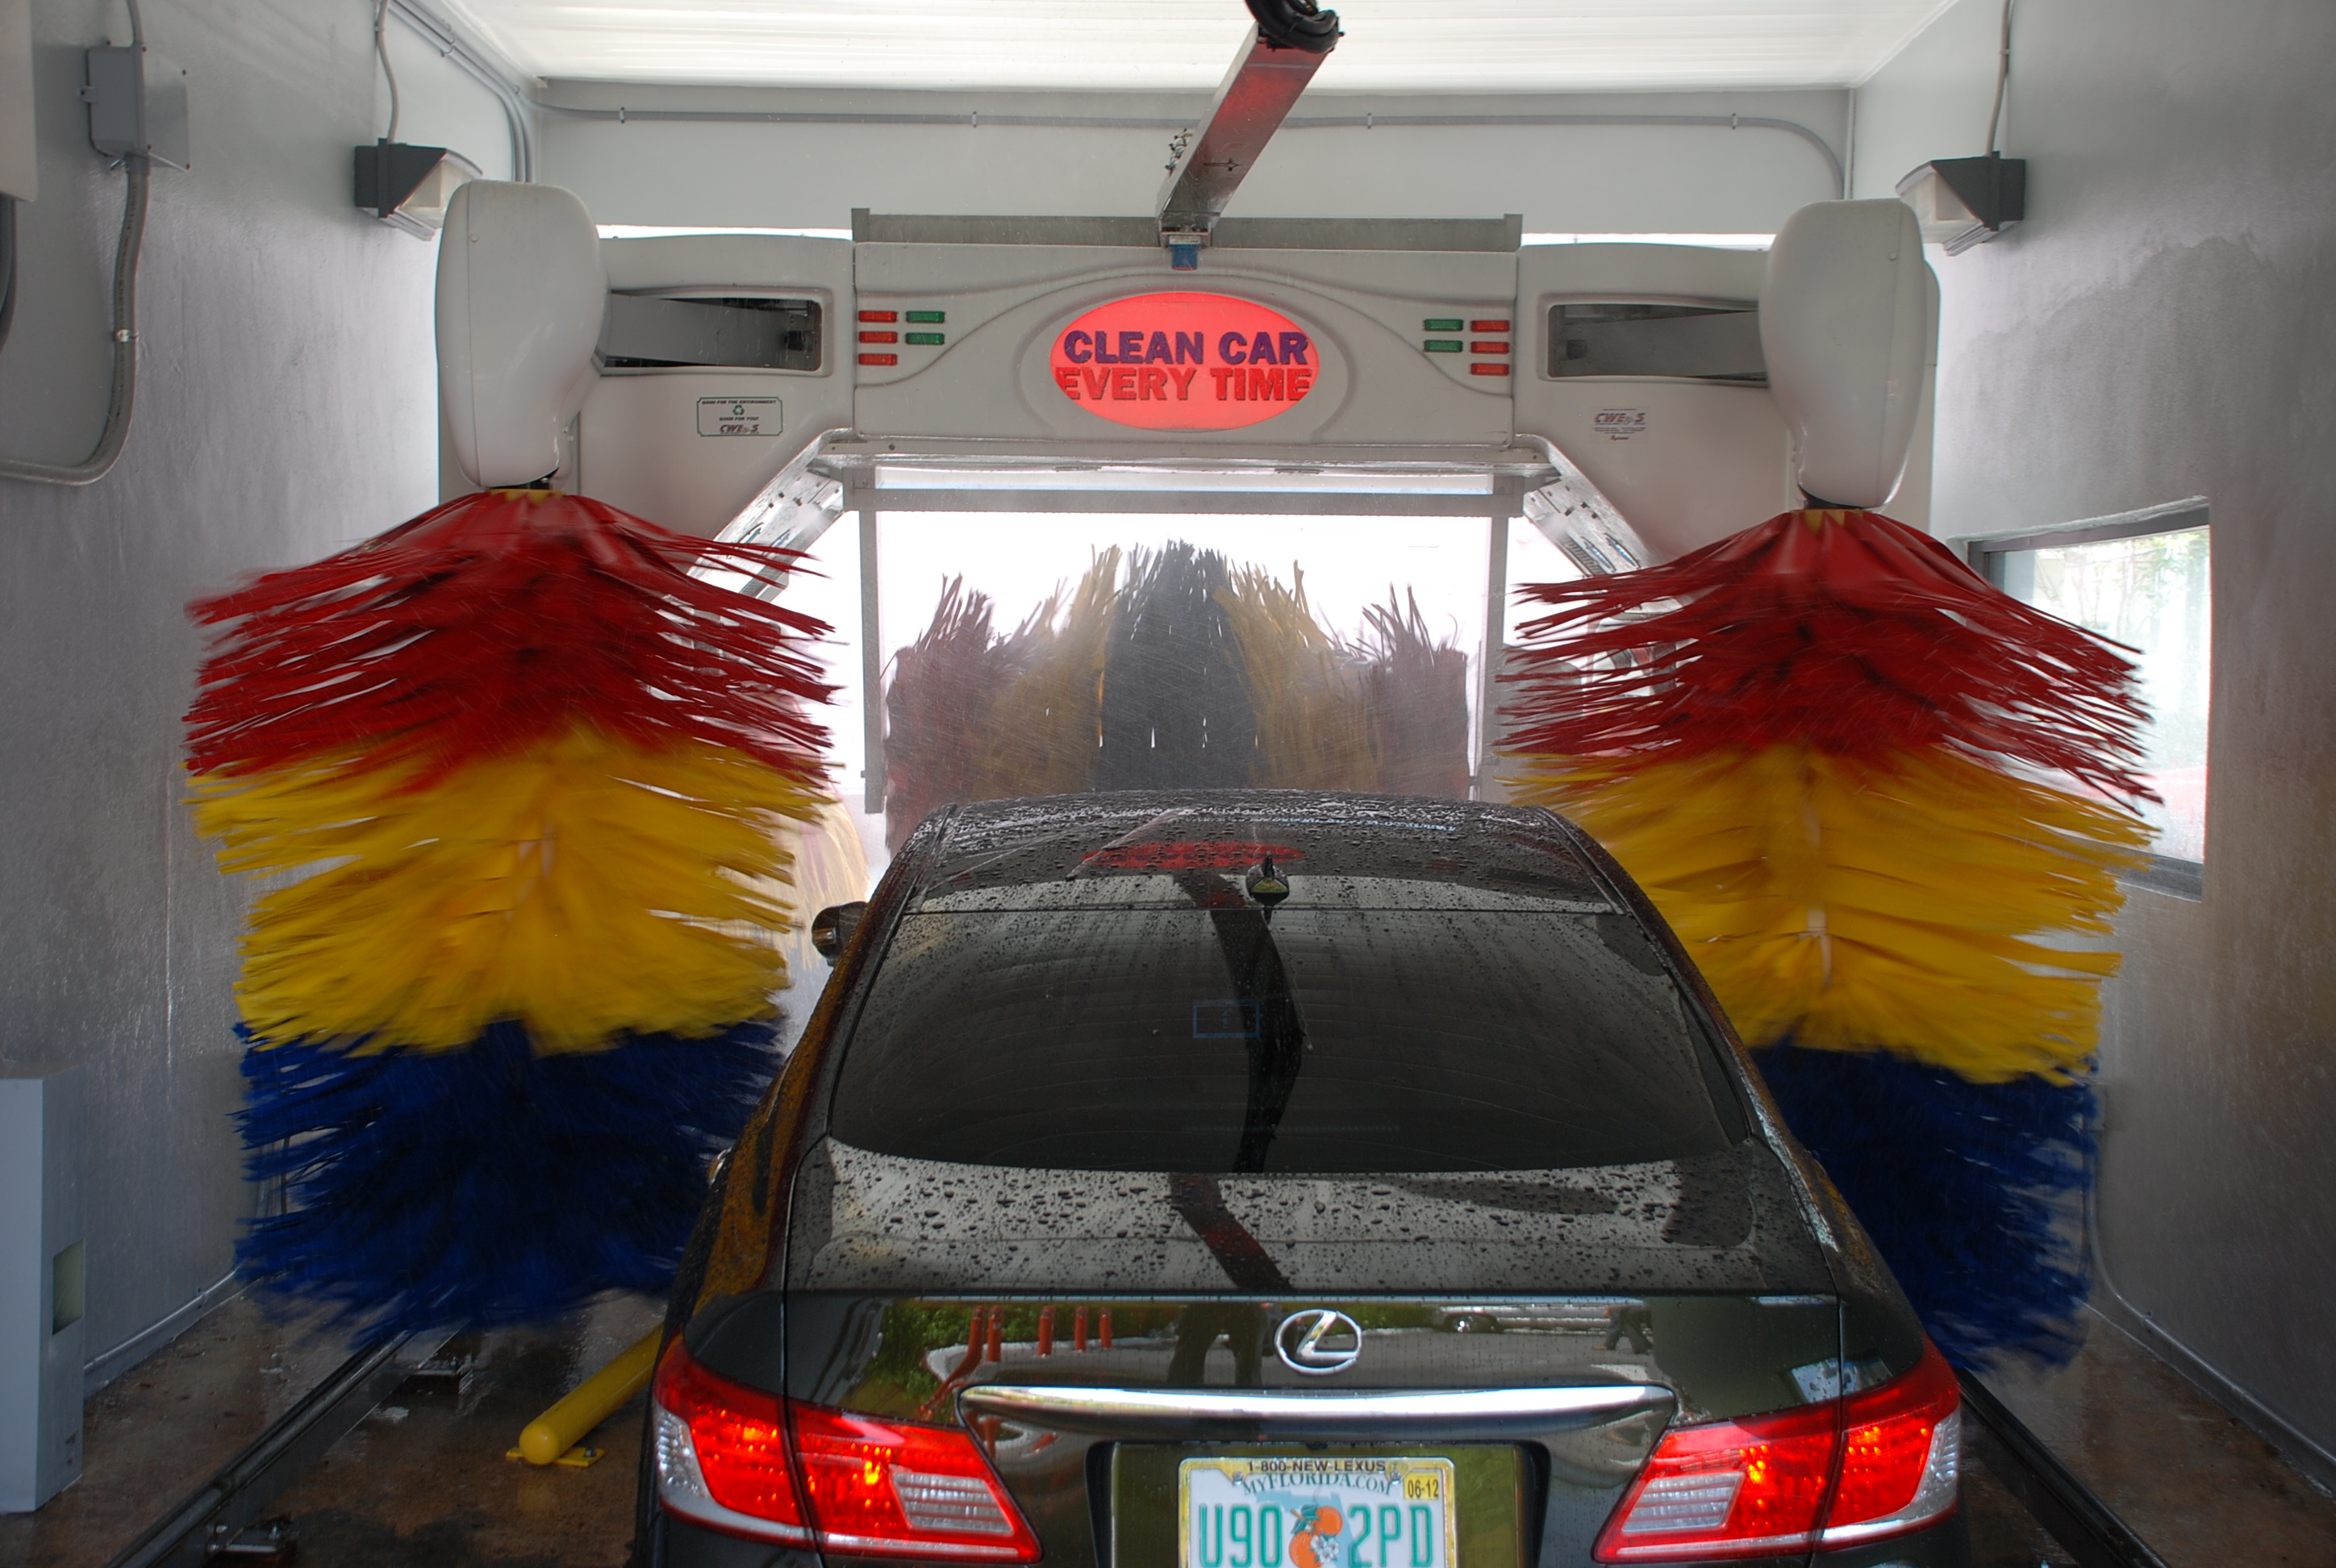 automatic car wash,  automatic car wash safe,  keep car clean,  car's finish, remove dirt car,  wash car in sunlight